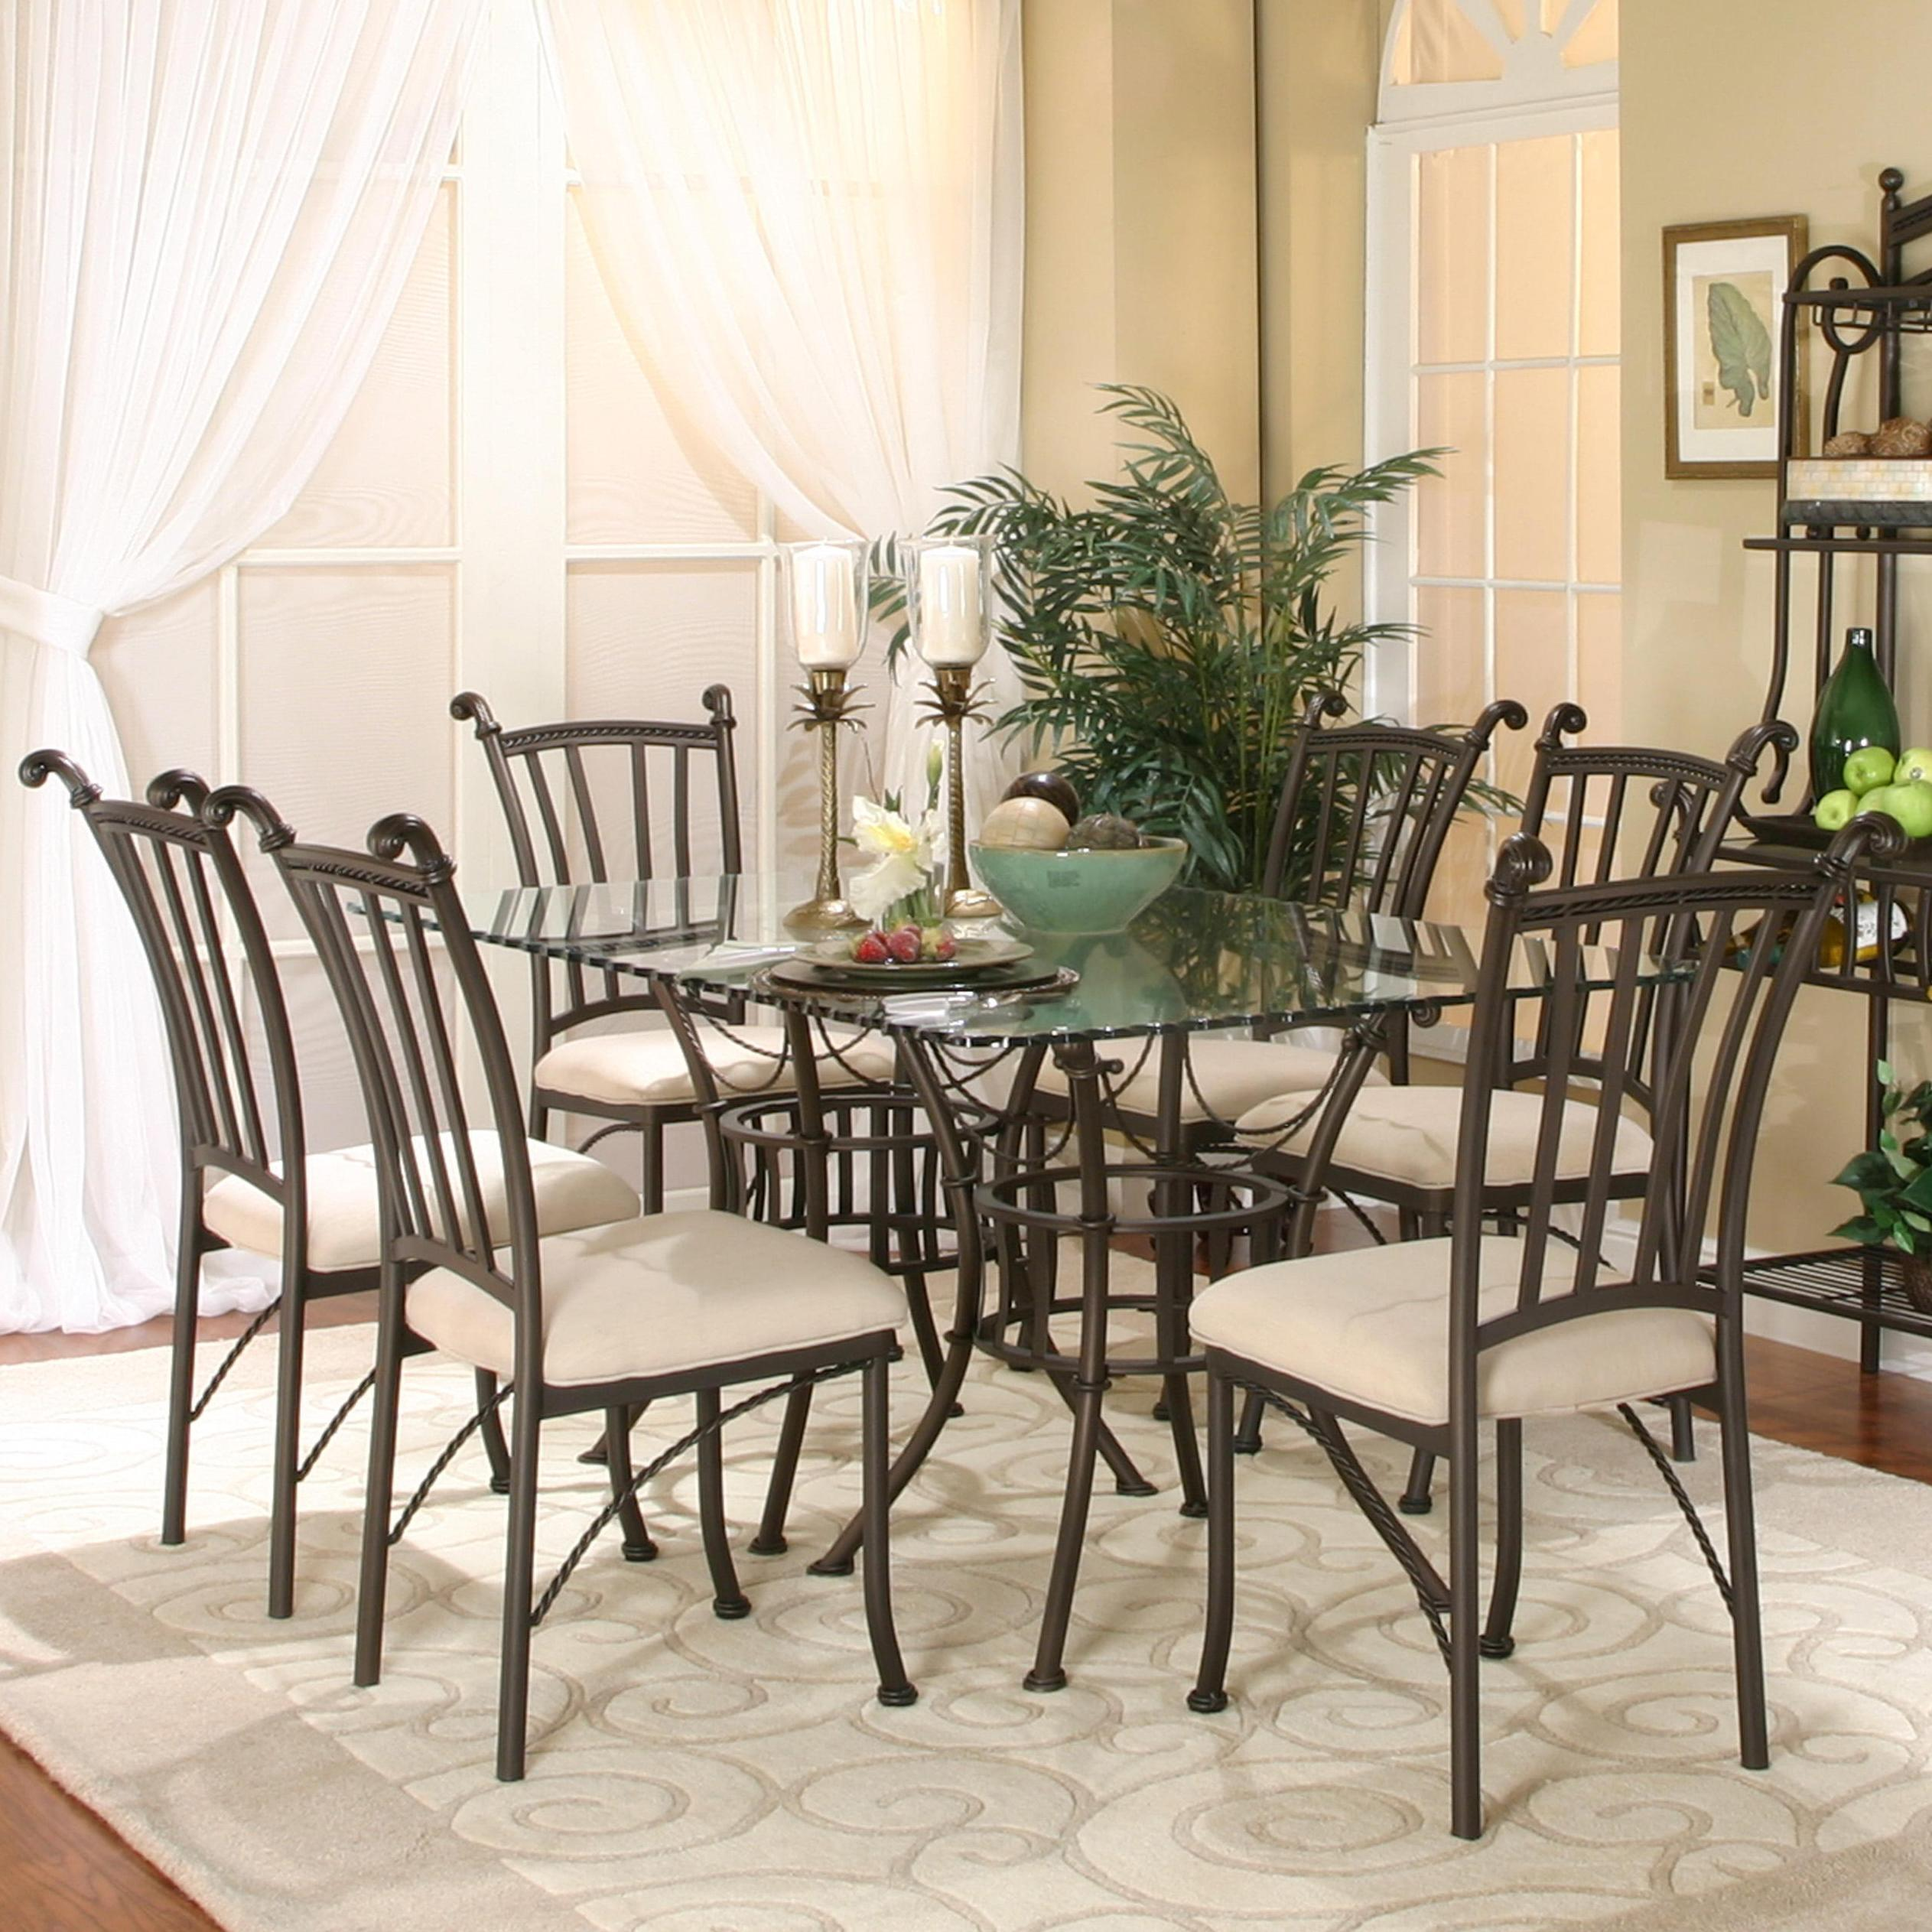 Glass Dining Table And Chairs Denali 7 Piece Rectangular Glass Table With Chairs By Cramco Inc